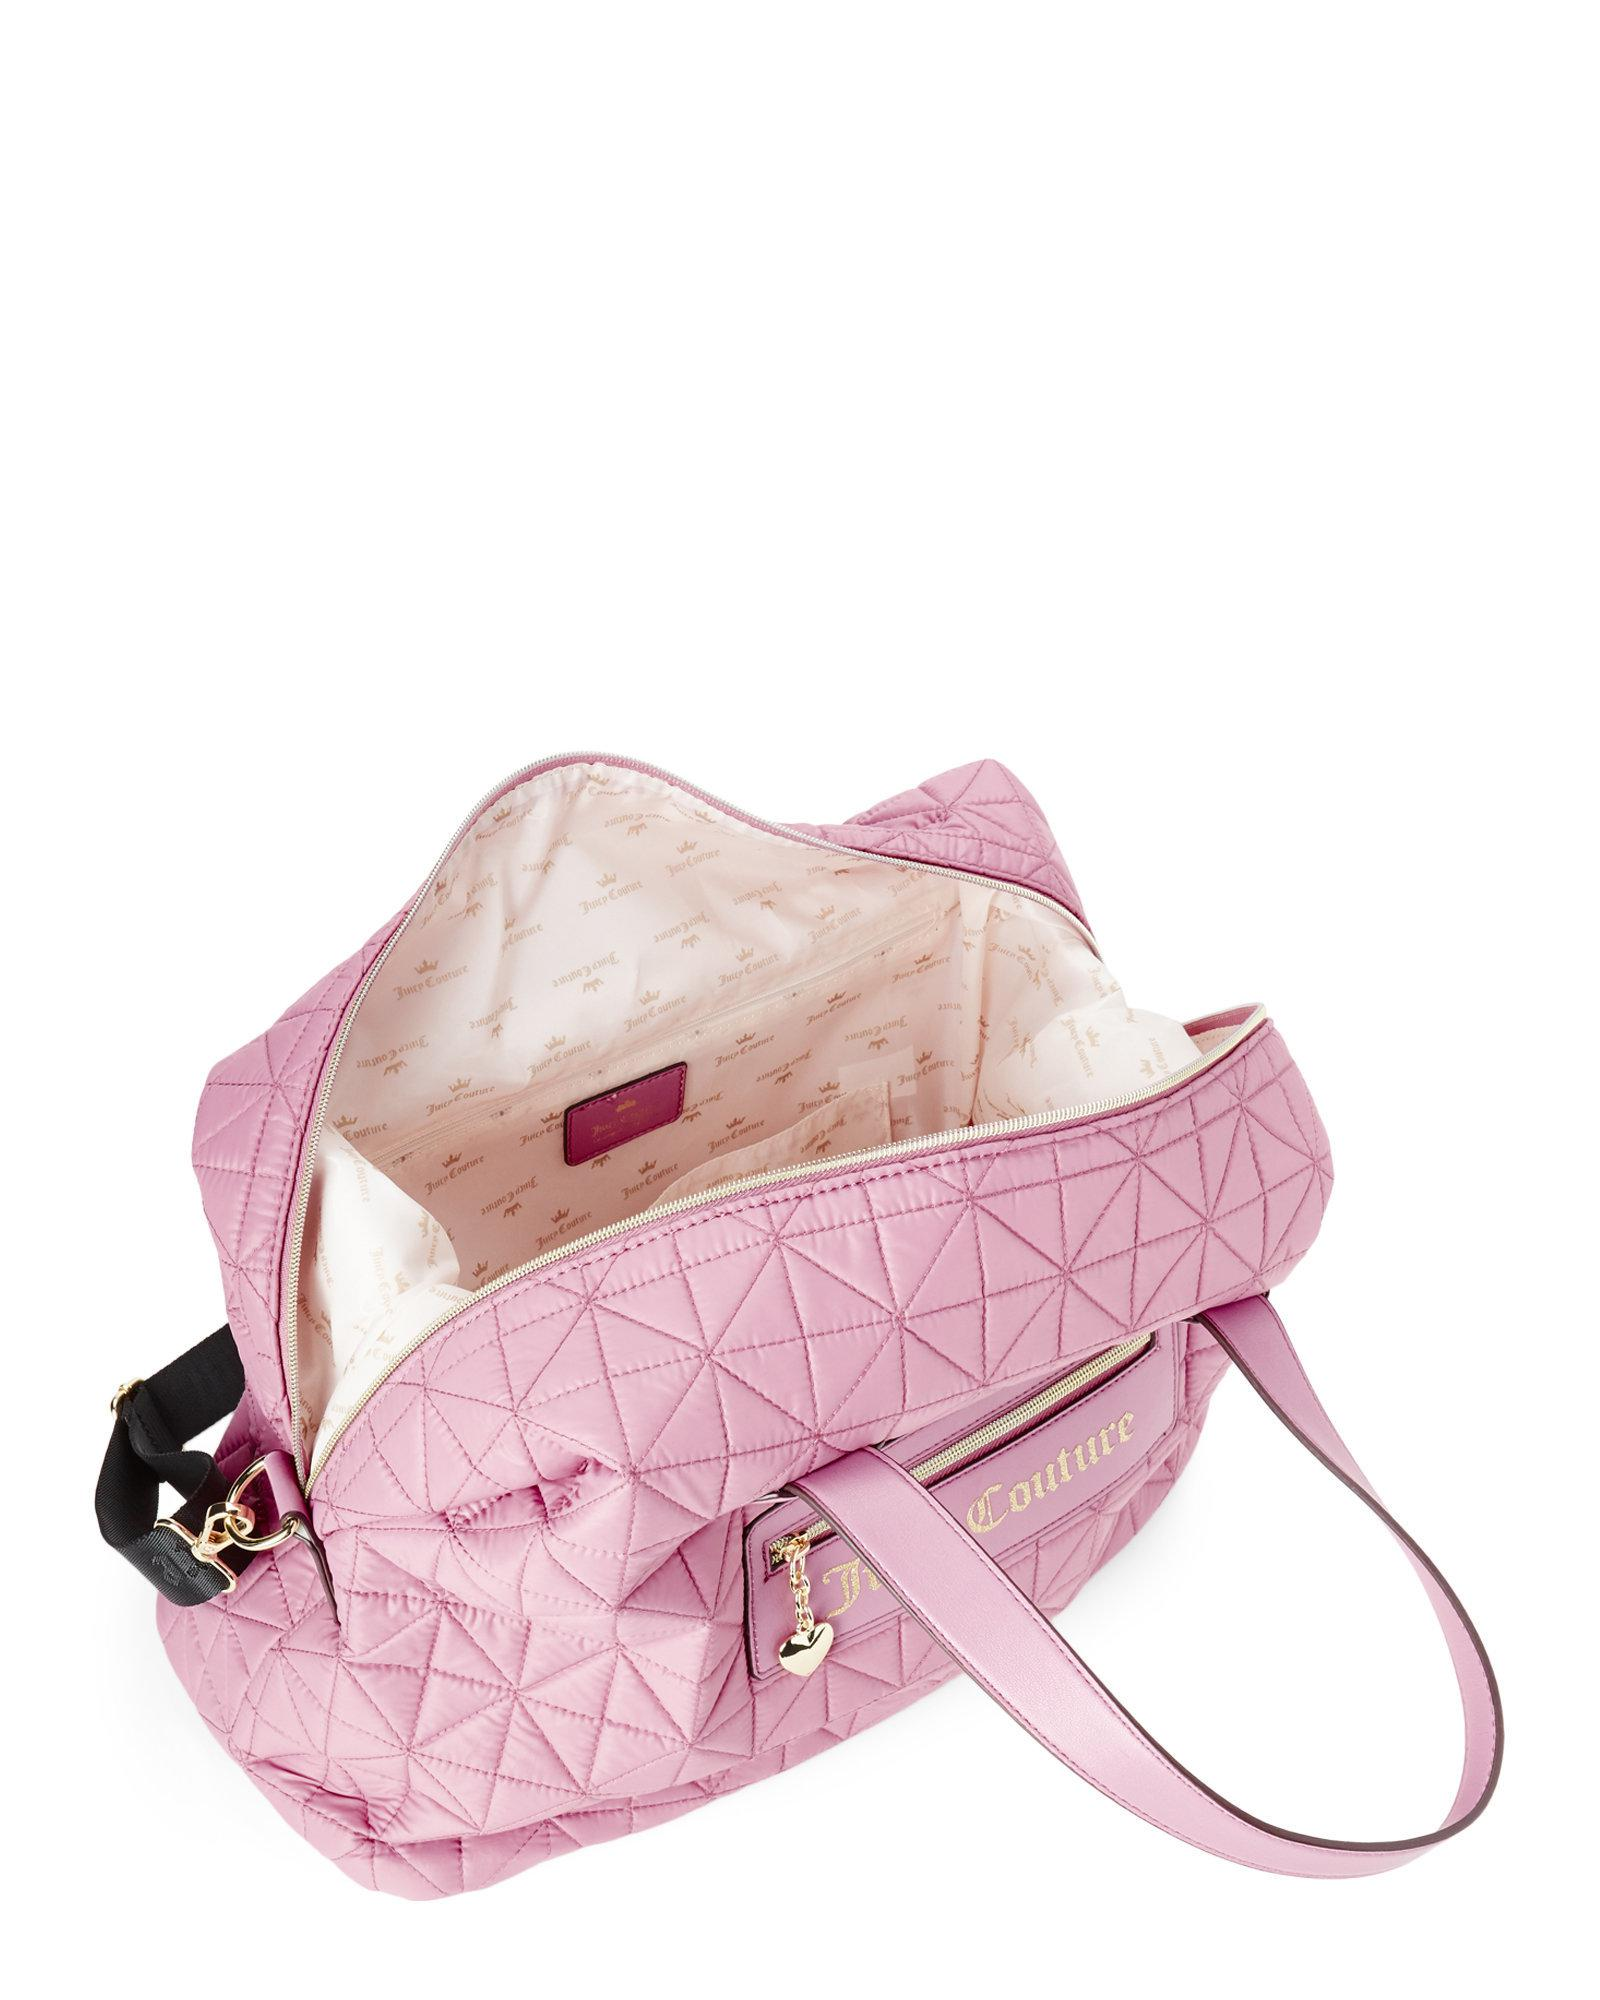 Lyst - Juicy Couture Posey Pink Starburst Quilted Weekender in Pink ab556582f